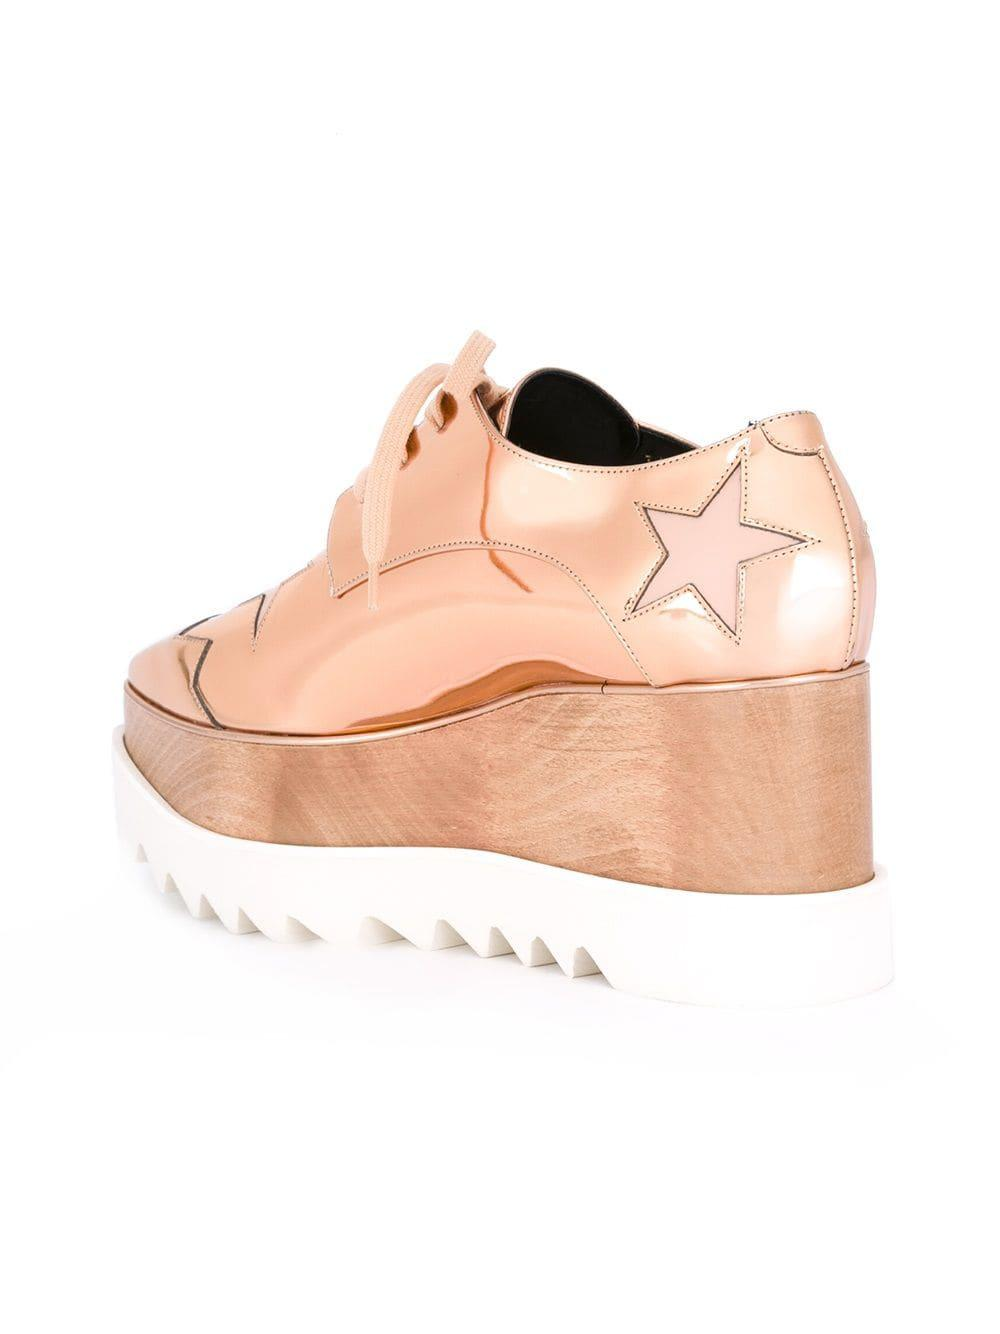 7b2d8b09dbe Lyst - Stella Mccartney  elyse  Shoes in Pink - Save 26.66666666666667%